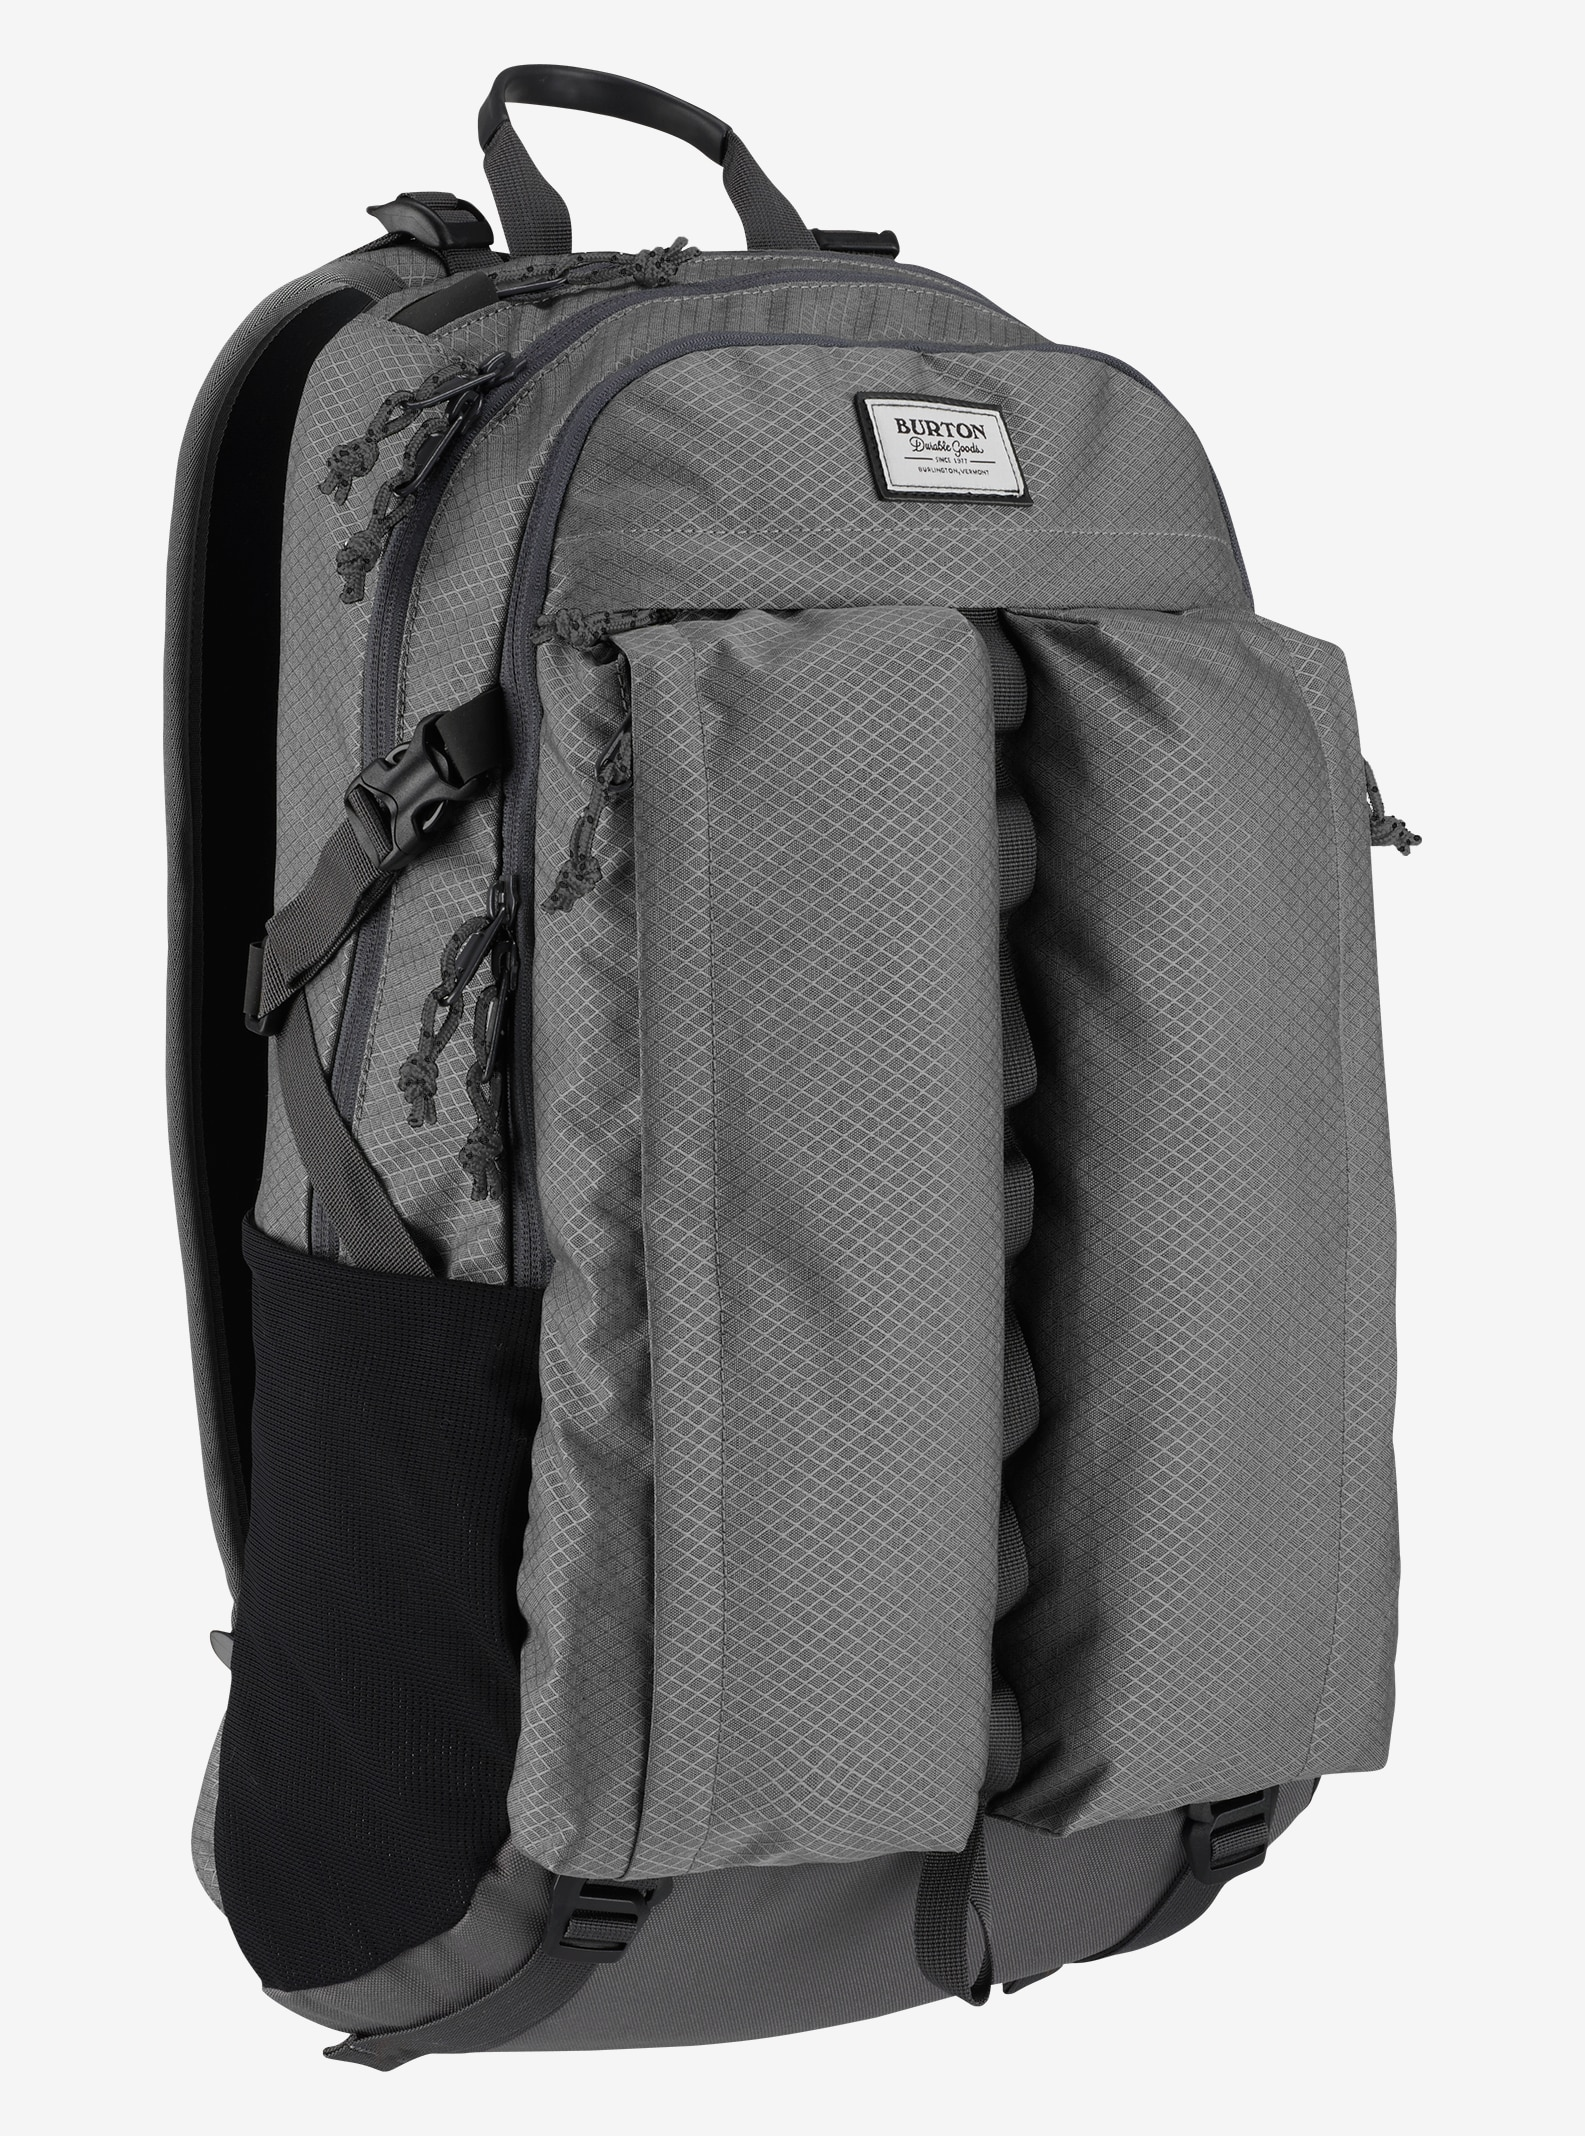 Burton Bravo Backpack shown in Faded Diamond Ripstop